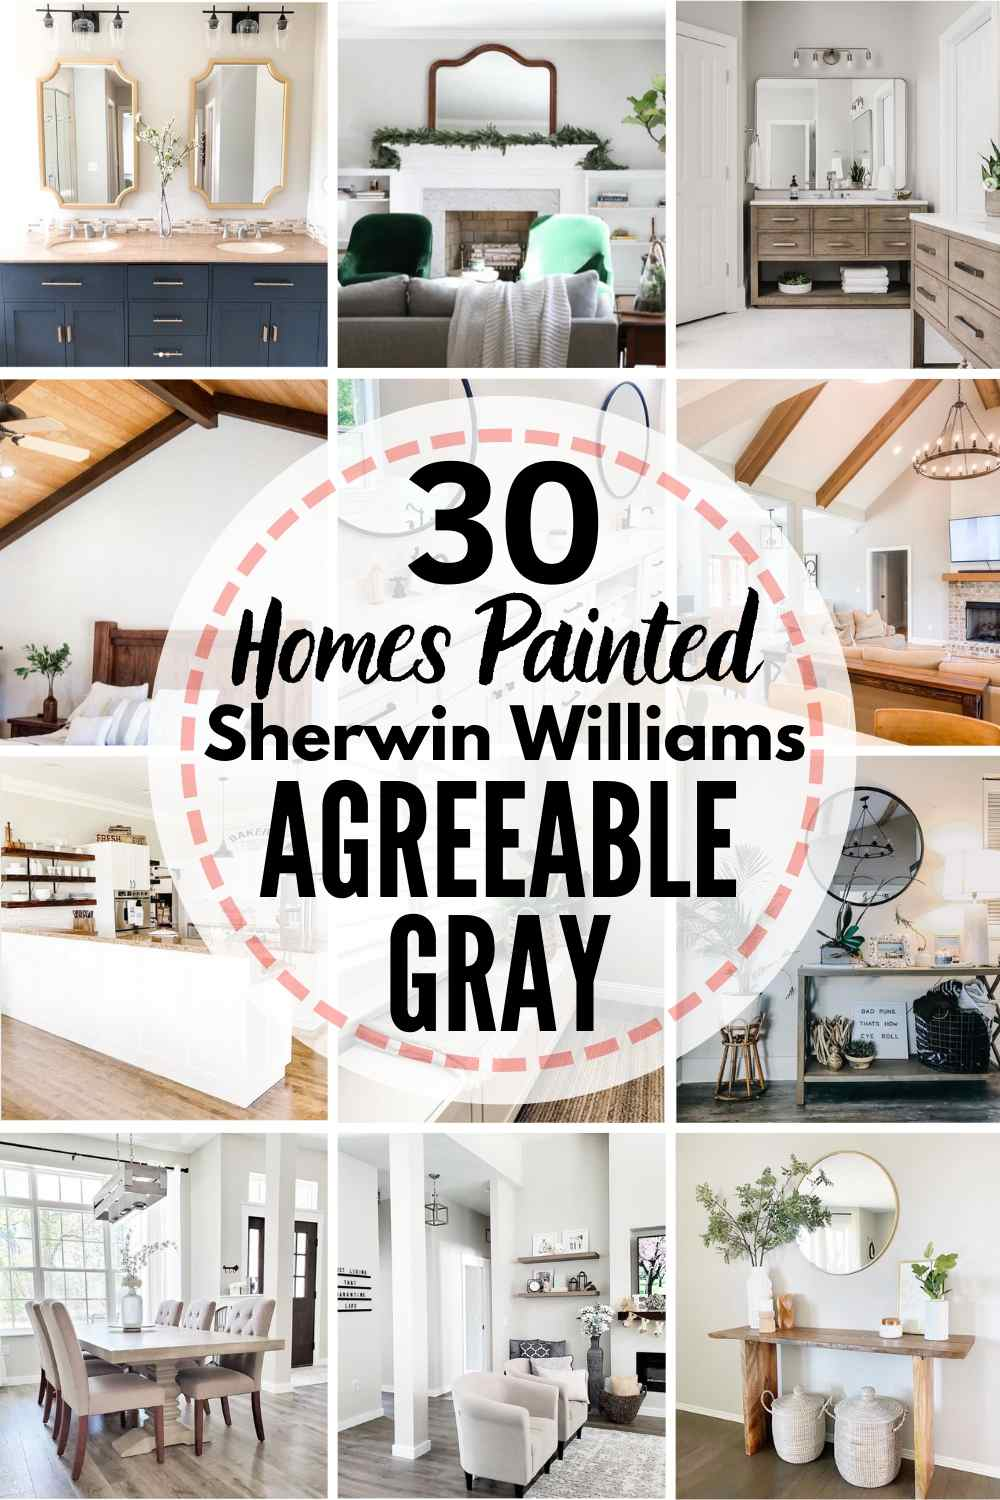 grid image of homes painted in Sherwin Williams Agreeable Gray